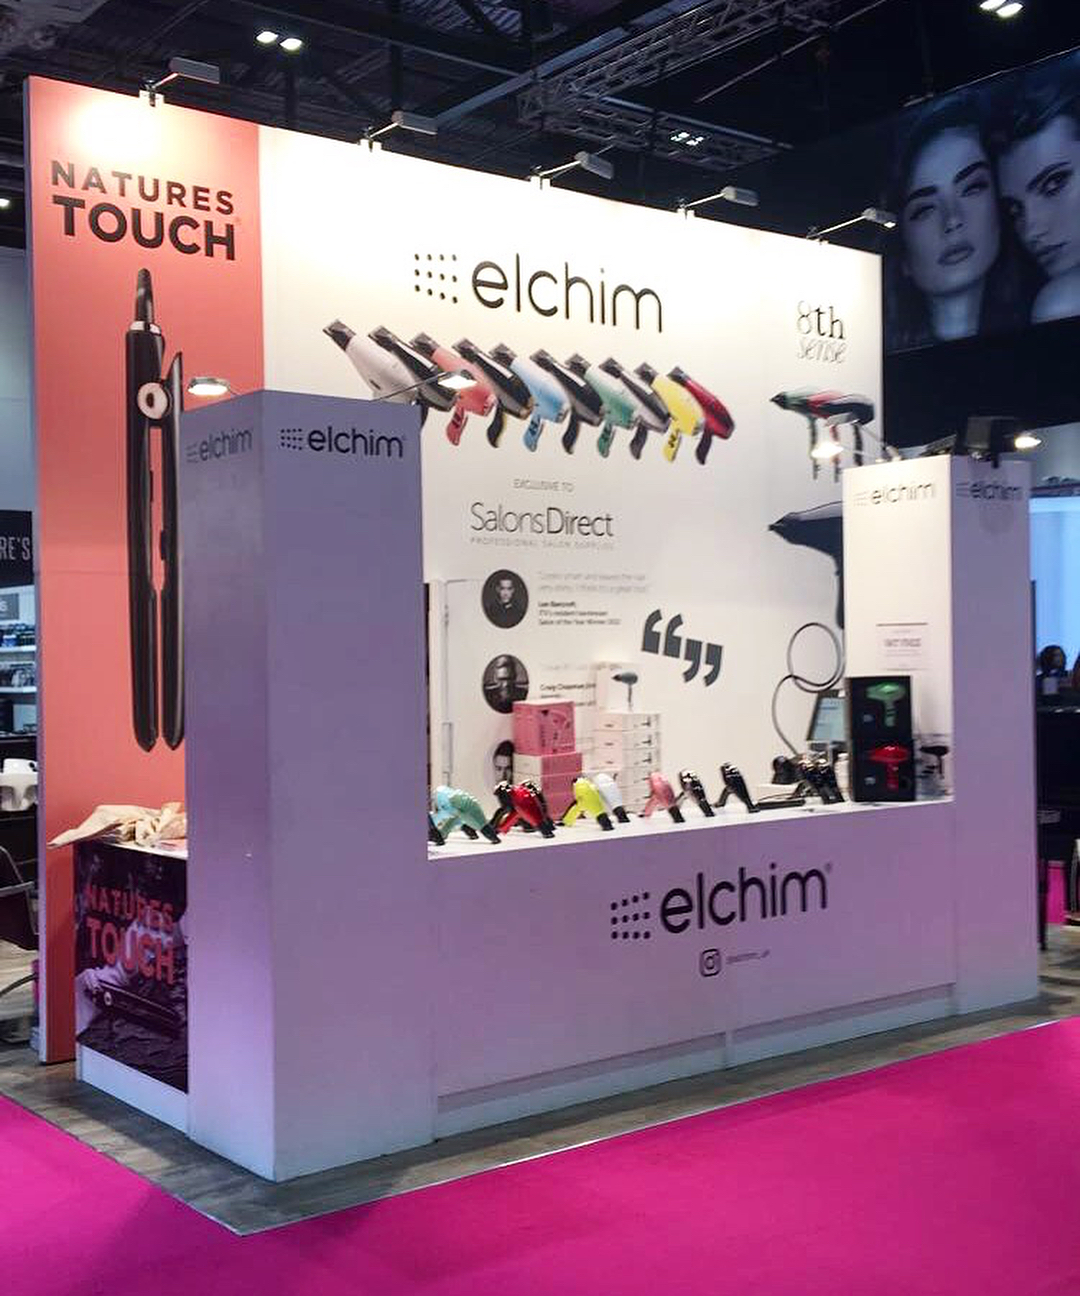 What an amazing weekend at Salon International! Thank you tohellip